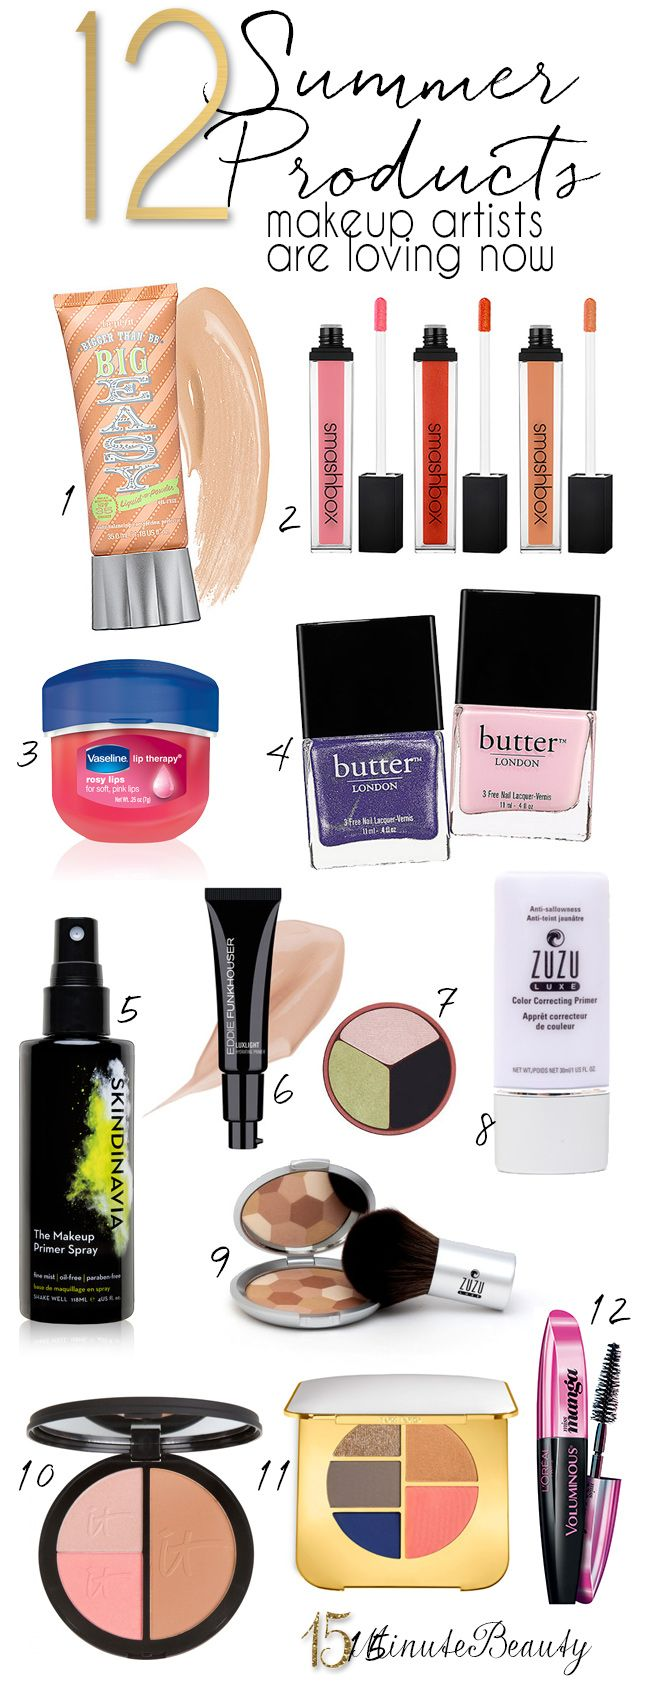 12 New Summer Buys Makeup Artists Are Loving Now via @15MinuteBeauty featuring #eddiefunkhouser